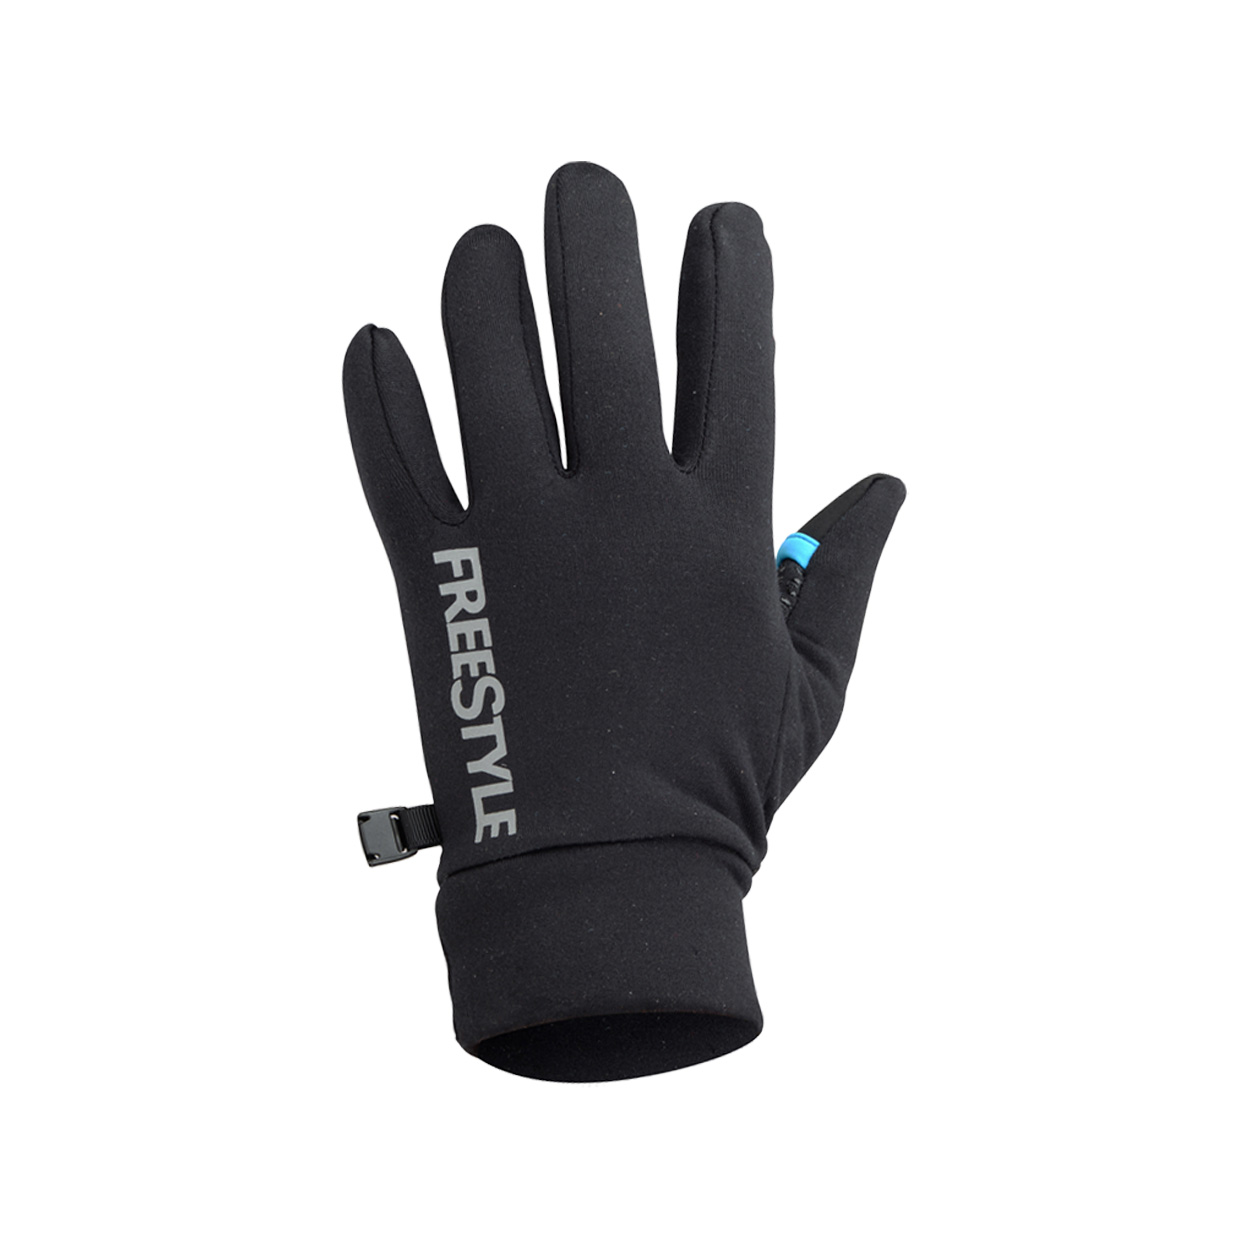 Shop Image - Touch Glove 01